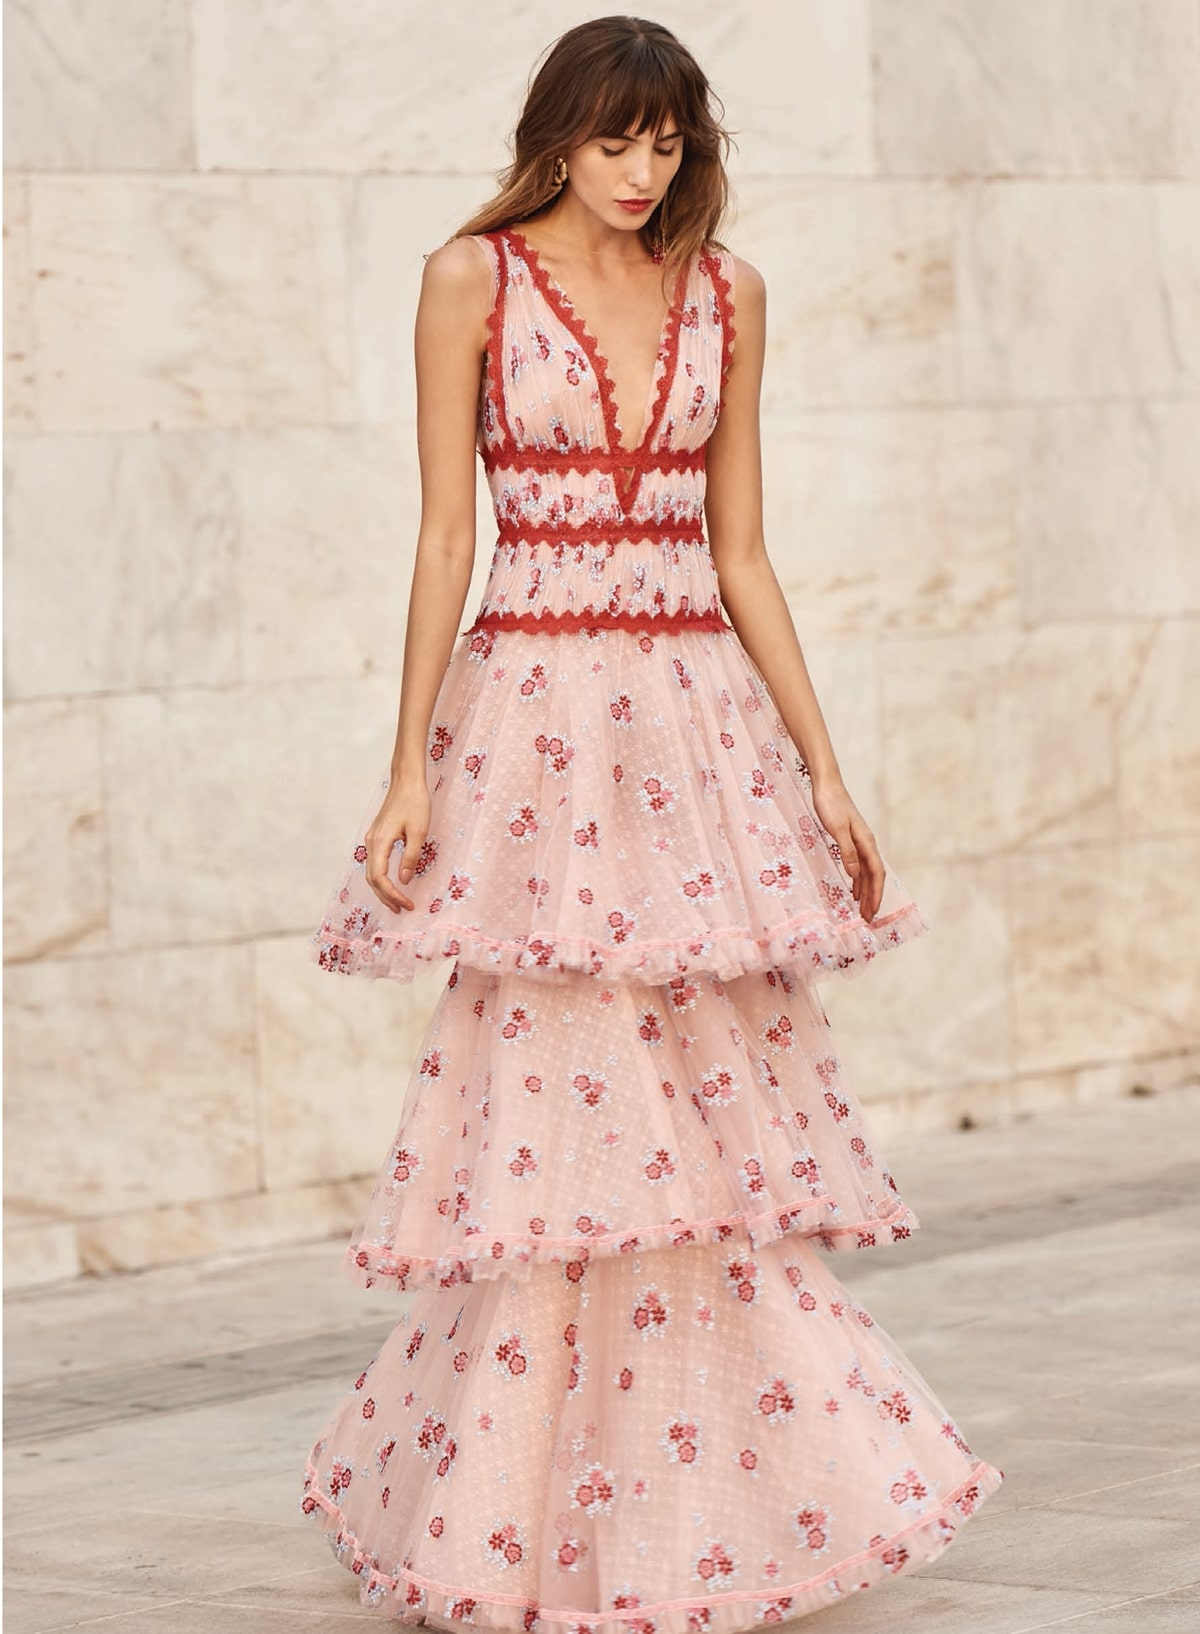 Long ruffled peach dress with red laced details Christos Costarellos